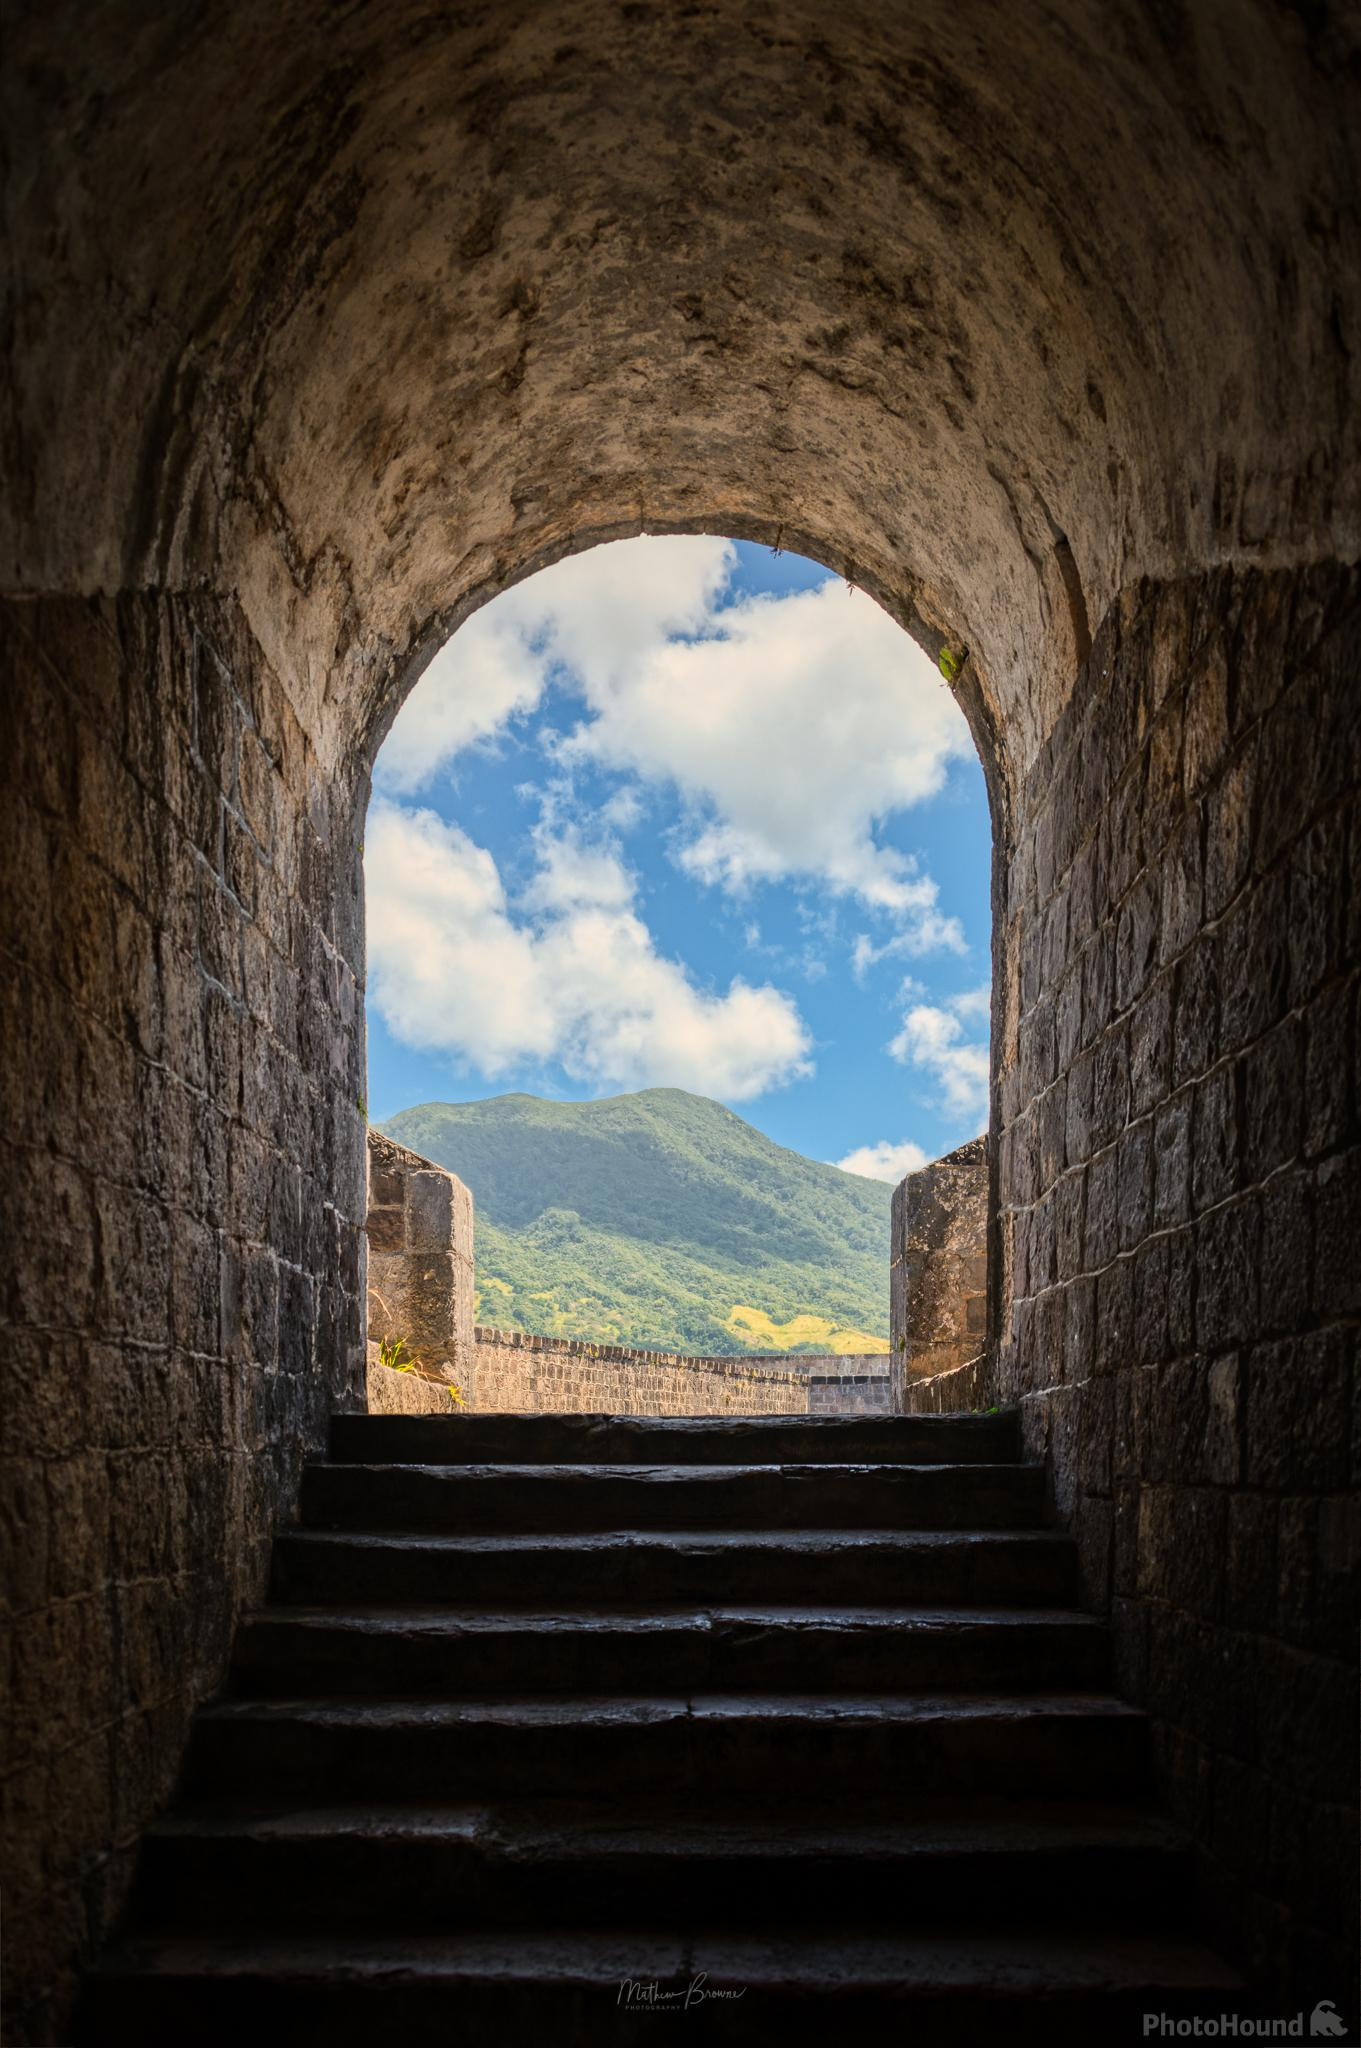 Saint Kitts and Nevis photo locations